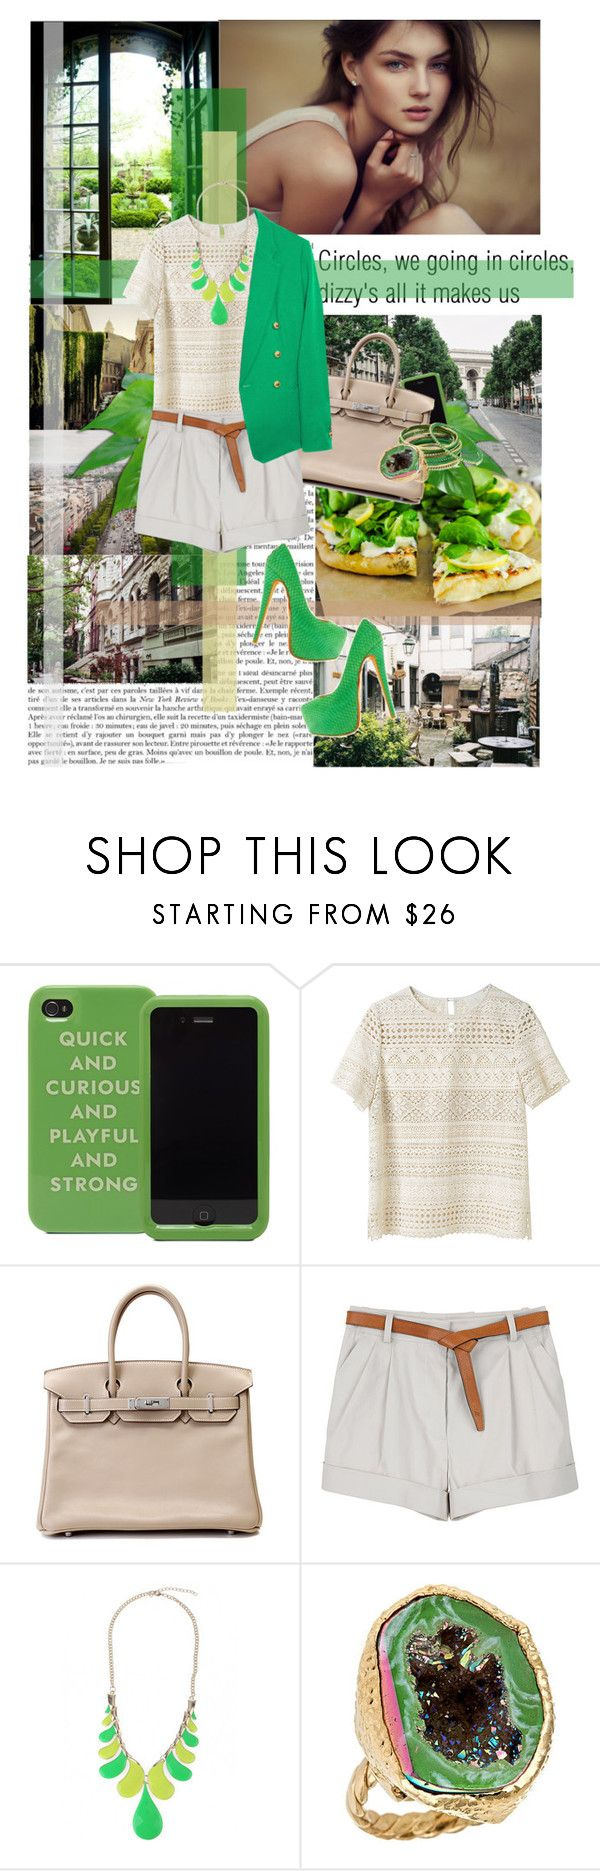 """№ 67"" by dasha-v ❤ liked on Polyvore featuring Vous Etes, Zara, Kate Spade, Band of Outsiders, Hermès, 3.1 Phillip Lim, Christian Louboutin, Amrita Singh and Dara Ettinger"